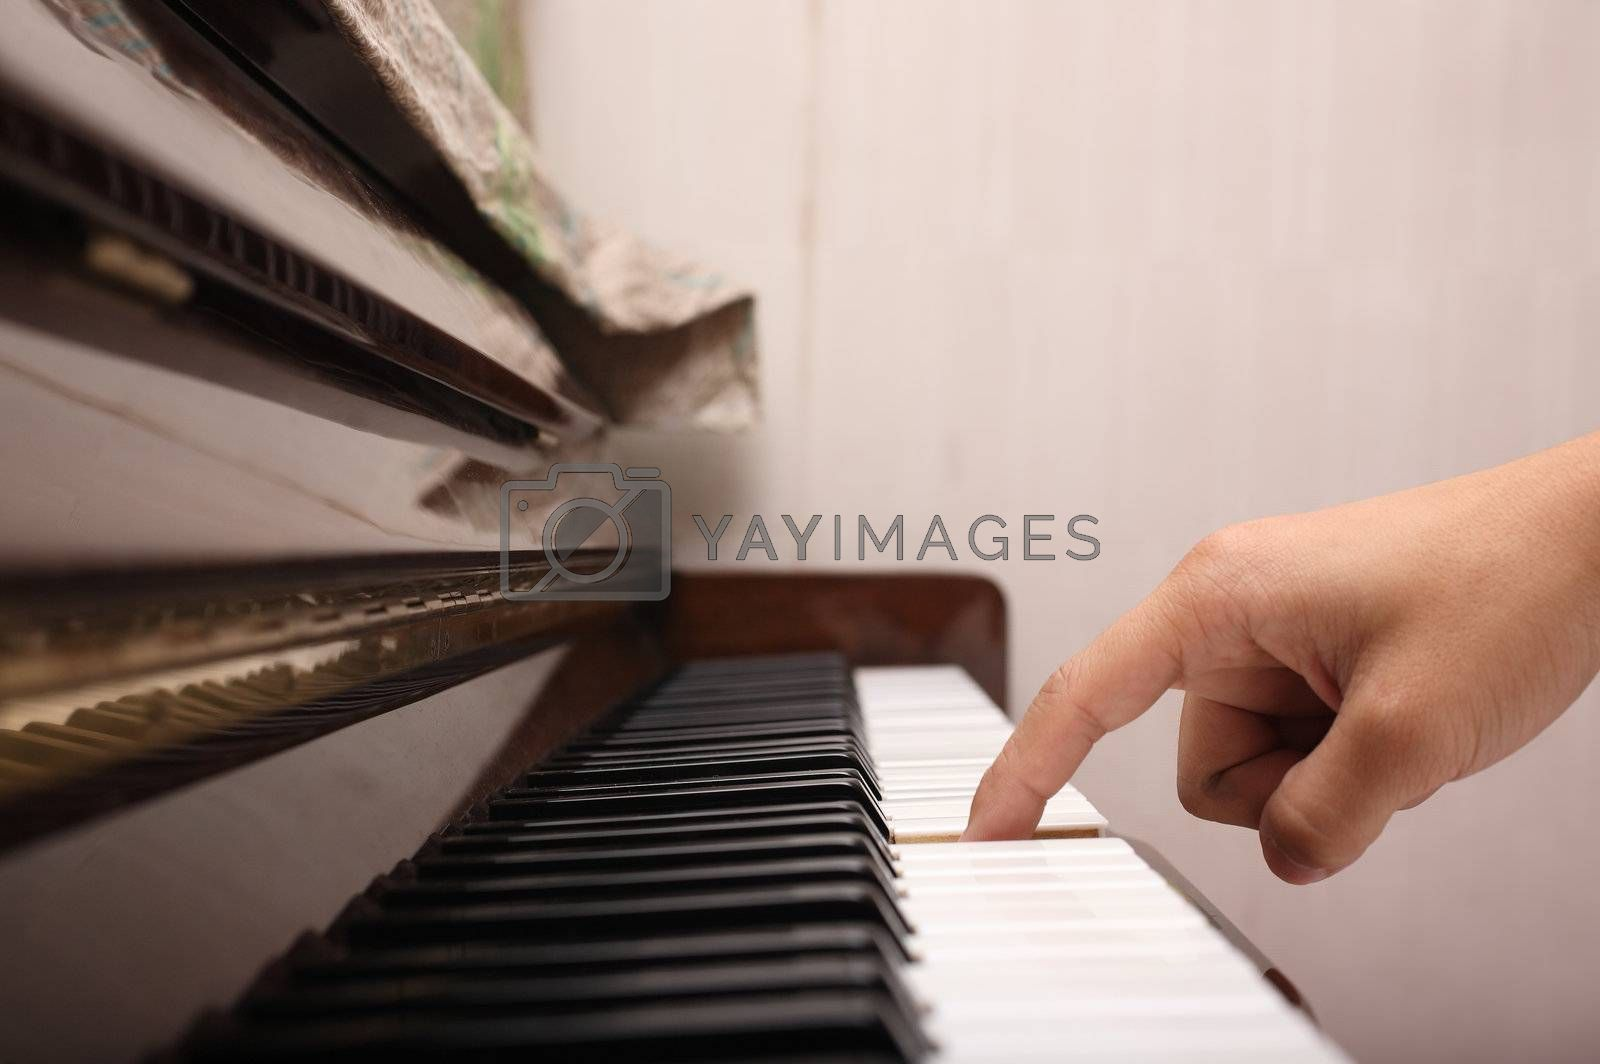 playing piano with one finger by leungchopan